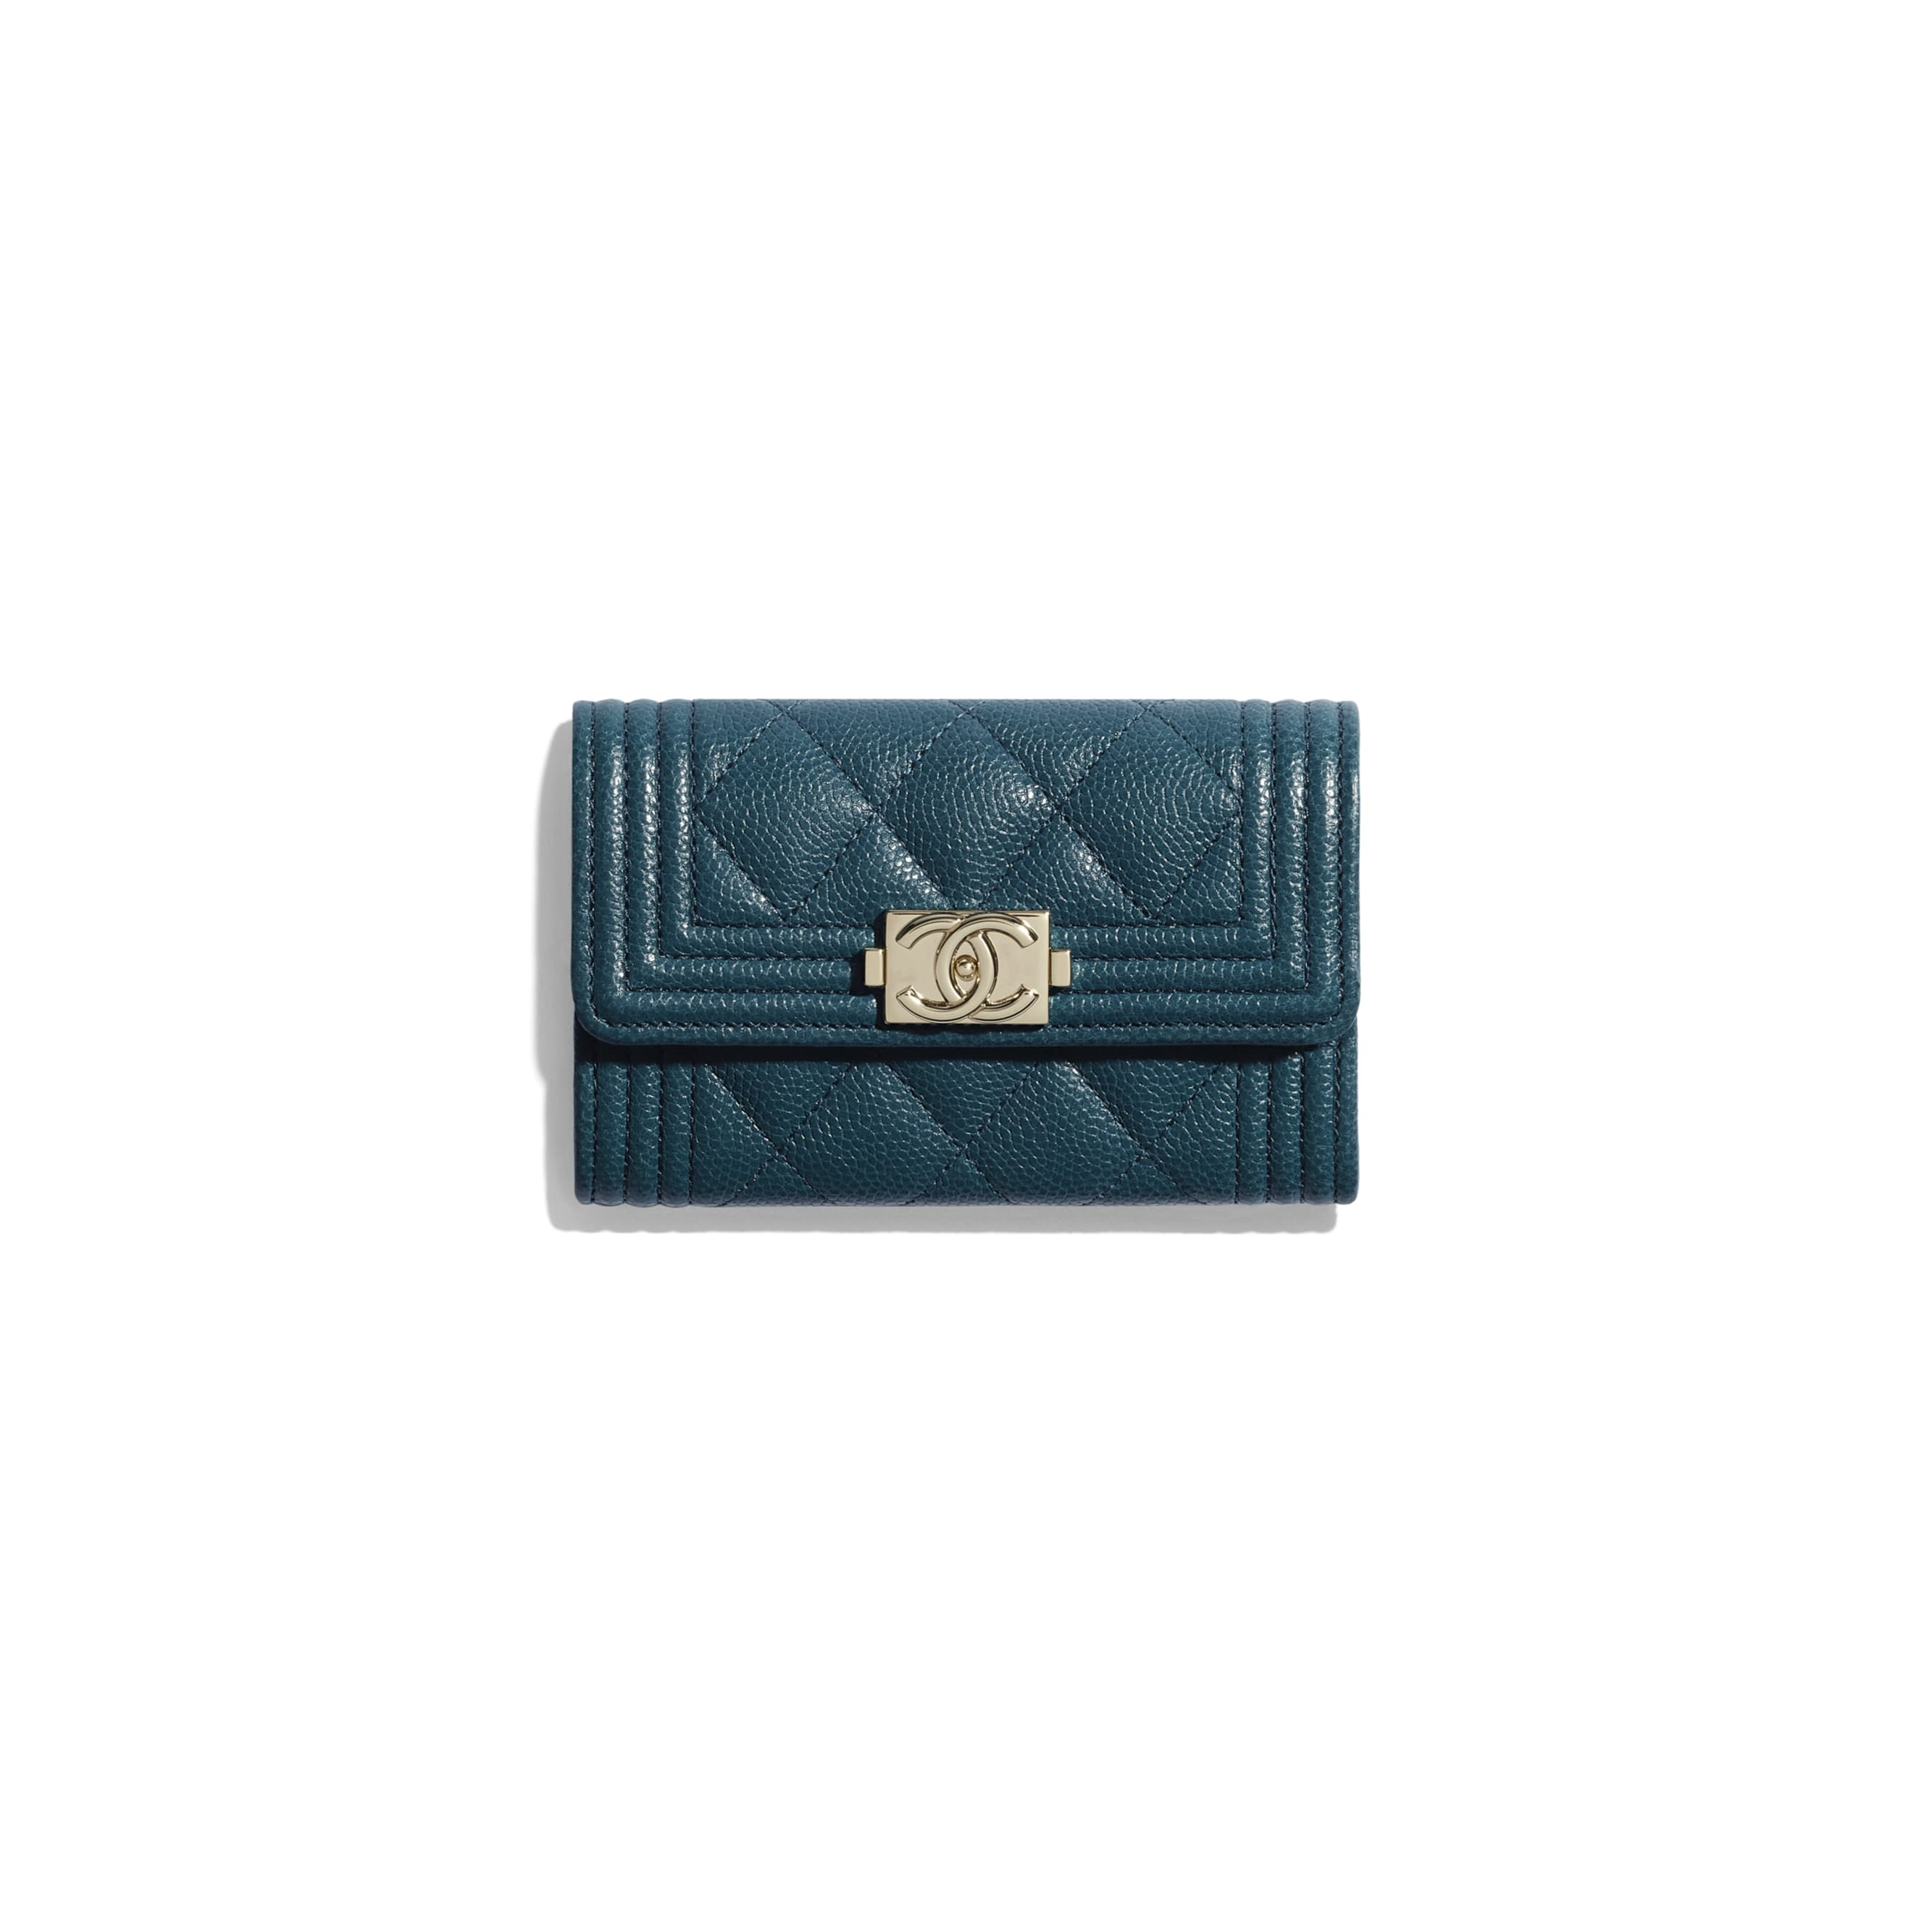 BOY CHANEL Flap Card Holder - Blue - Grained Calfskin & Gold-Tone Metal - CHANEL - Default view - see standard sized version